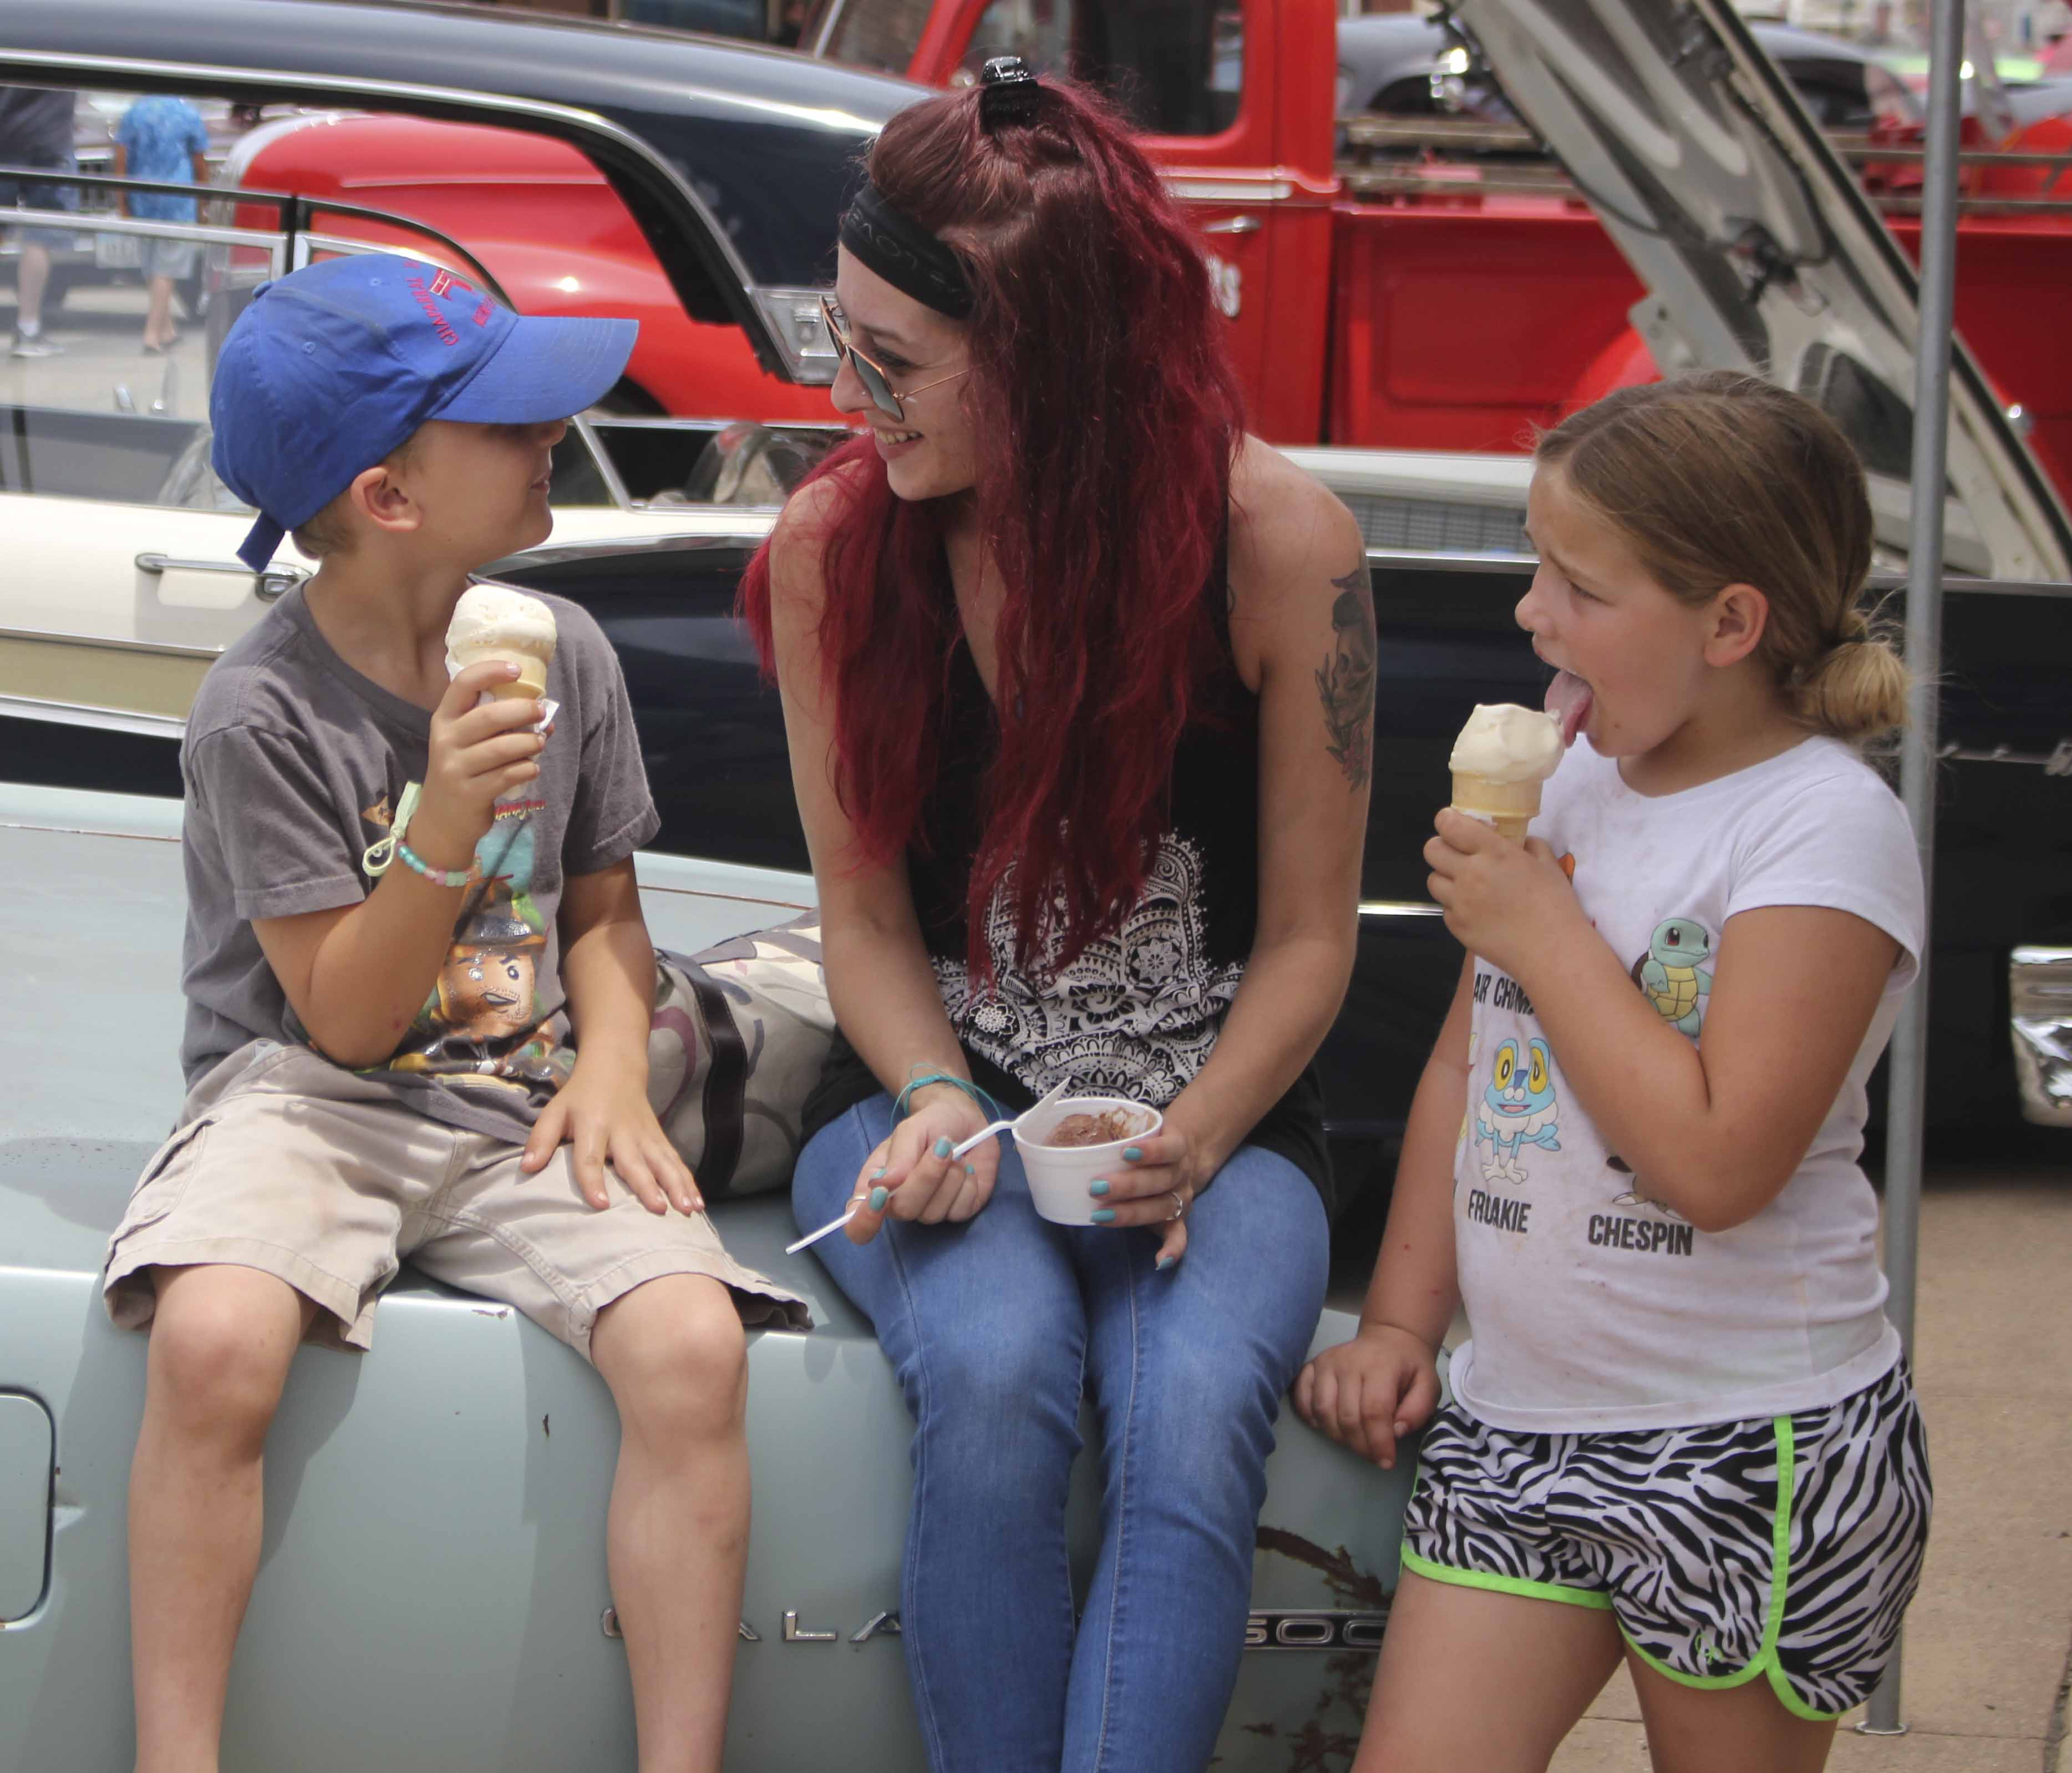 Enjoying an ice cream break during Monti in Motion are (from left) 6-year-old Kayden Lyon, Jess Lyon and 7-year-old Avrie Elliott. All are from Monticello.